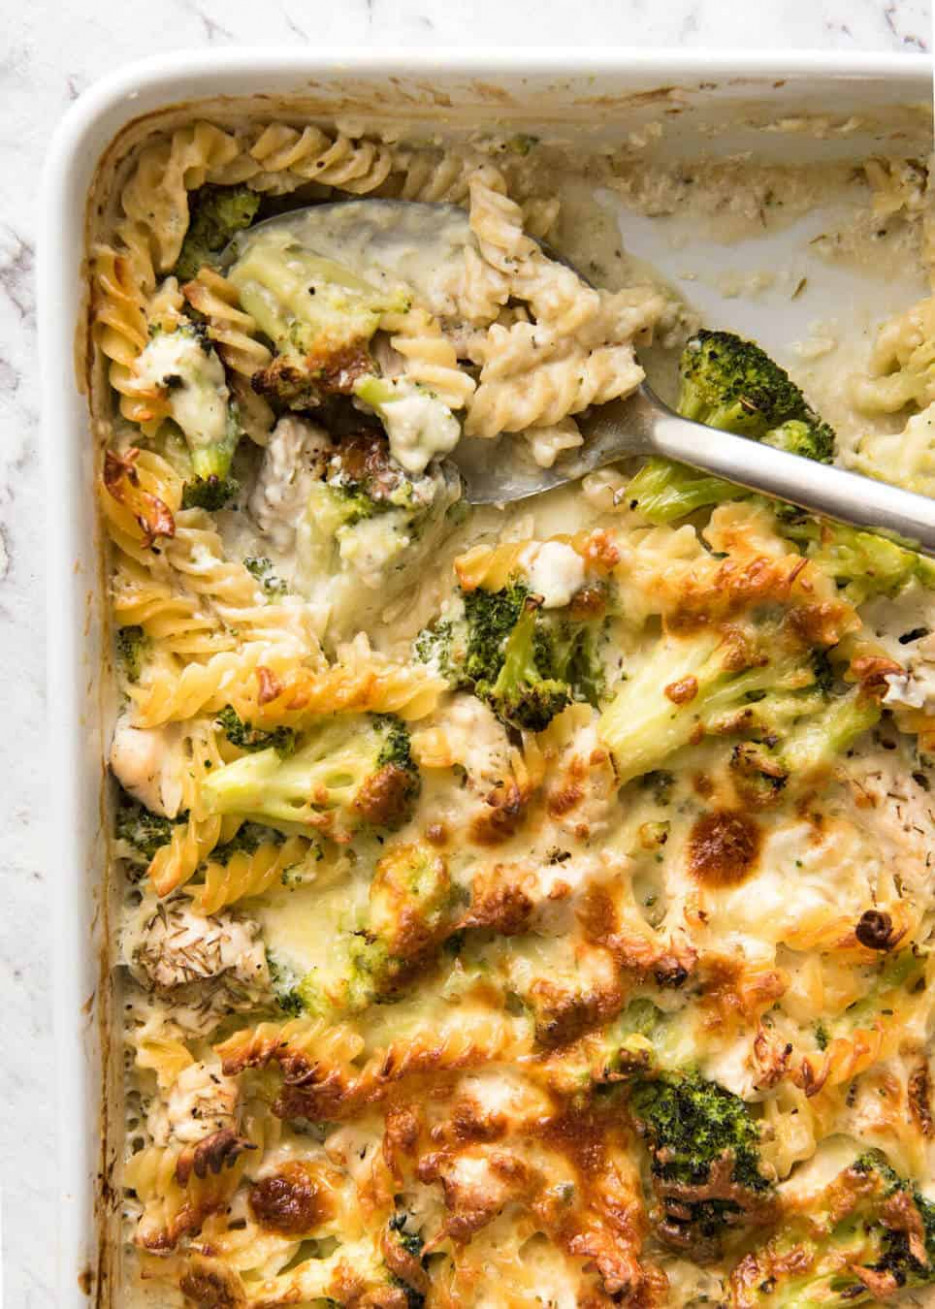 Ultra Lazy Creamy Chicken and Broccoli Pasta Bake